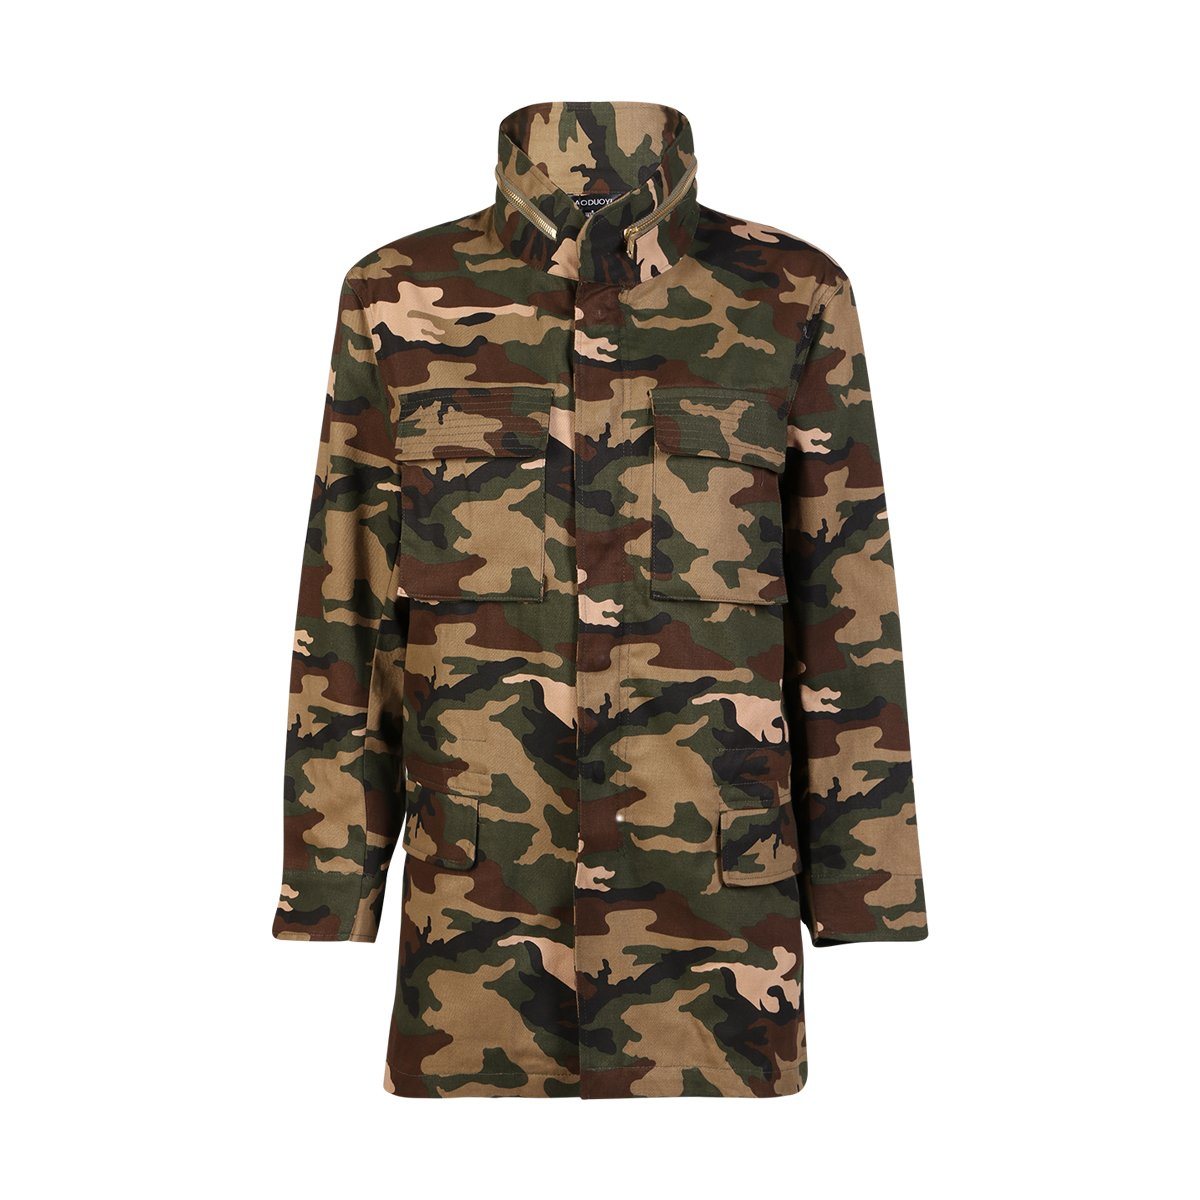 haoduoyi Womens Loose Camouflage Coats Disposition Outwear Jackets (XL) by HaoDuoYi (Image #2)